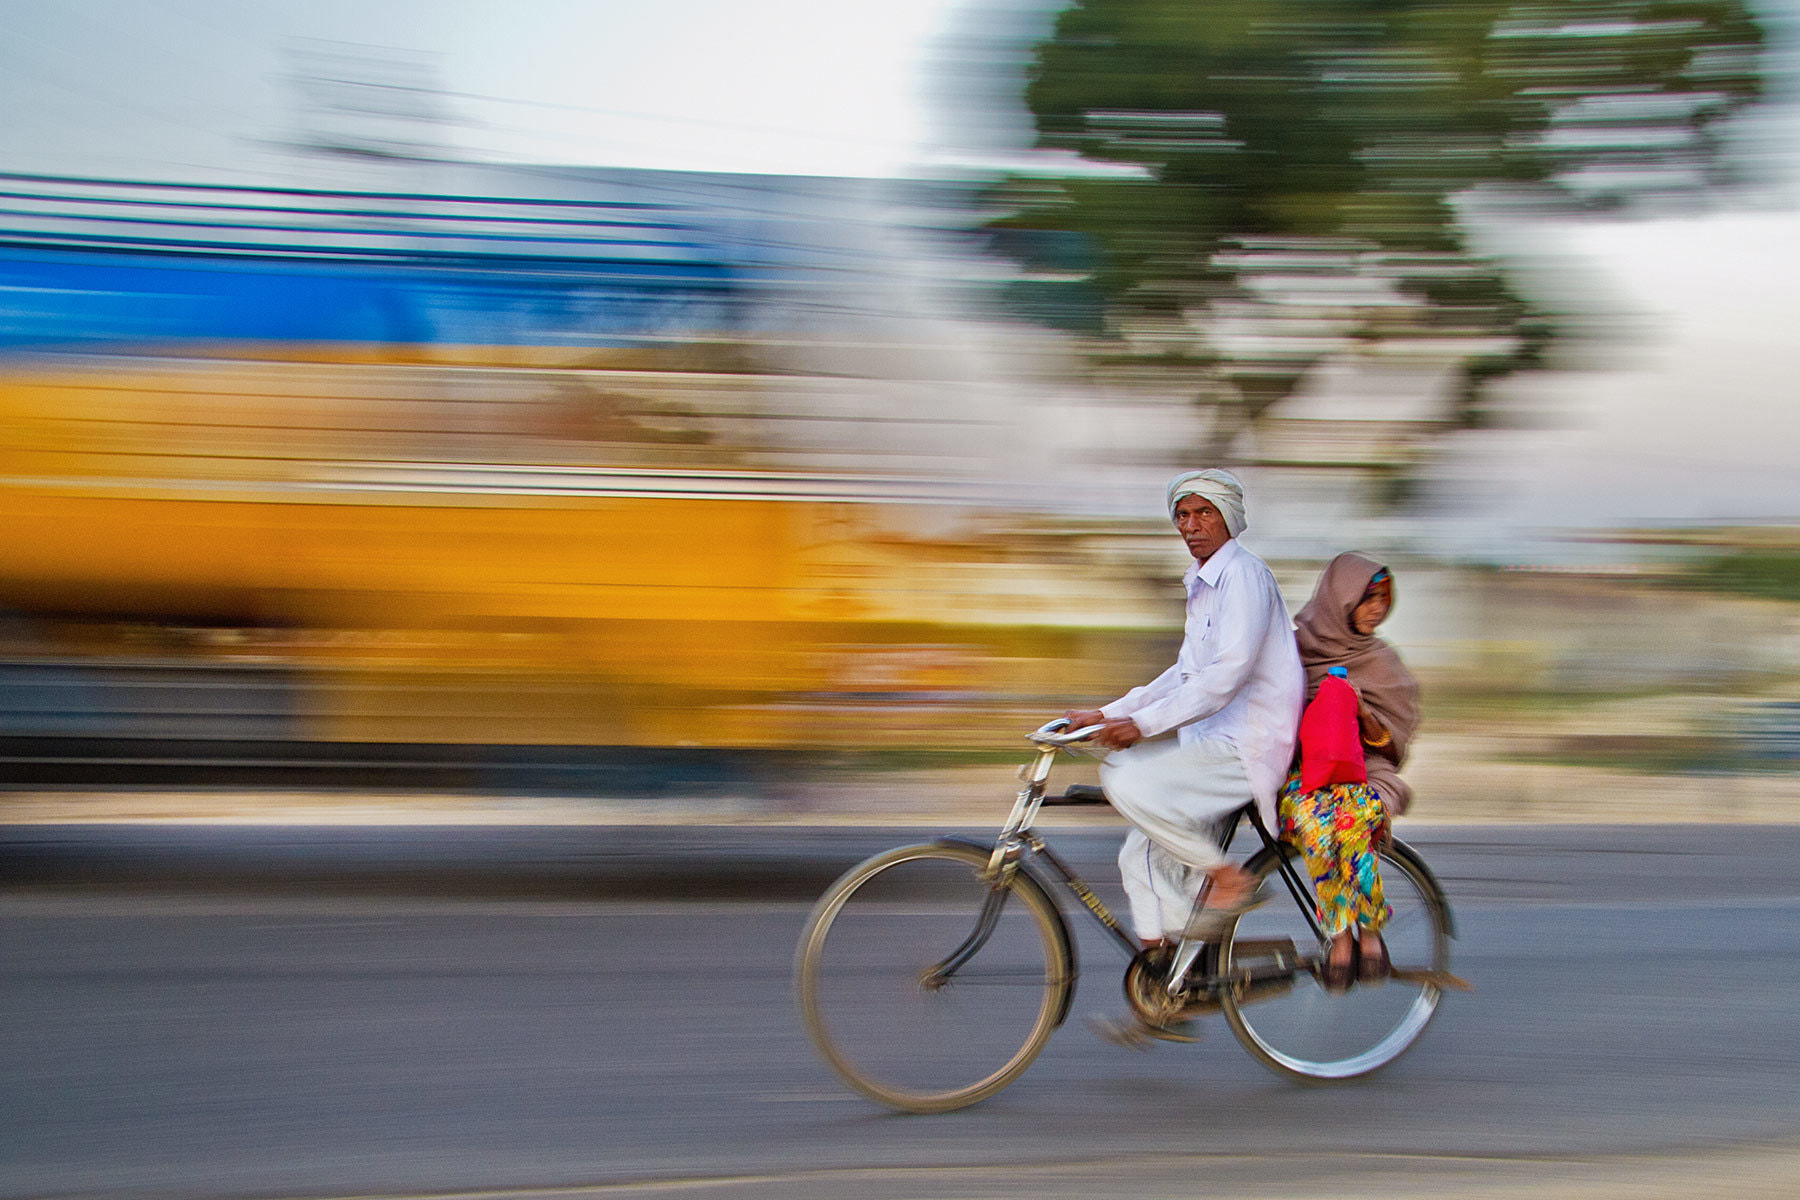 Photograph Biking Home - India in Motion - Jaipur - India by Sandy Gennrich on 500px